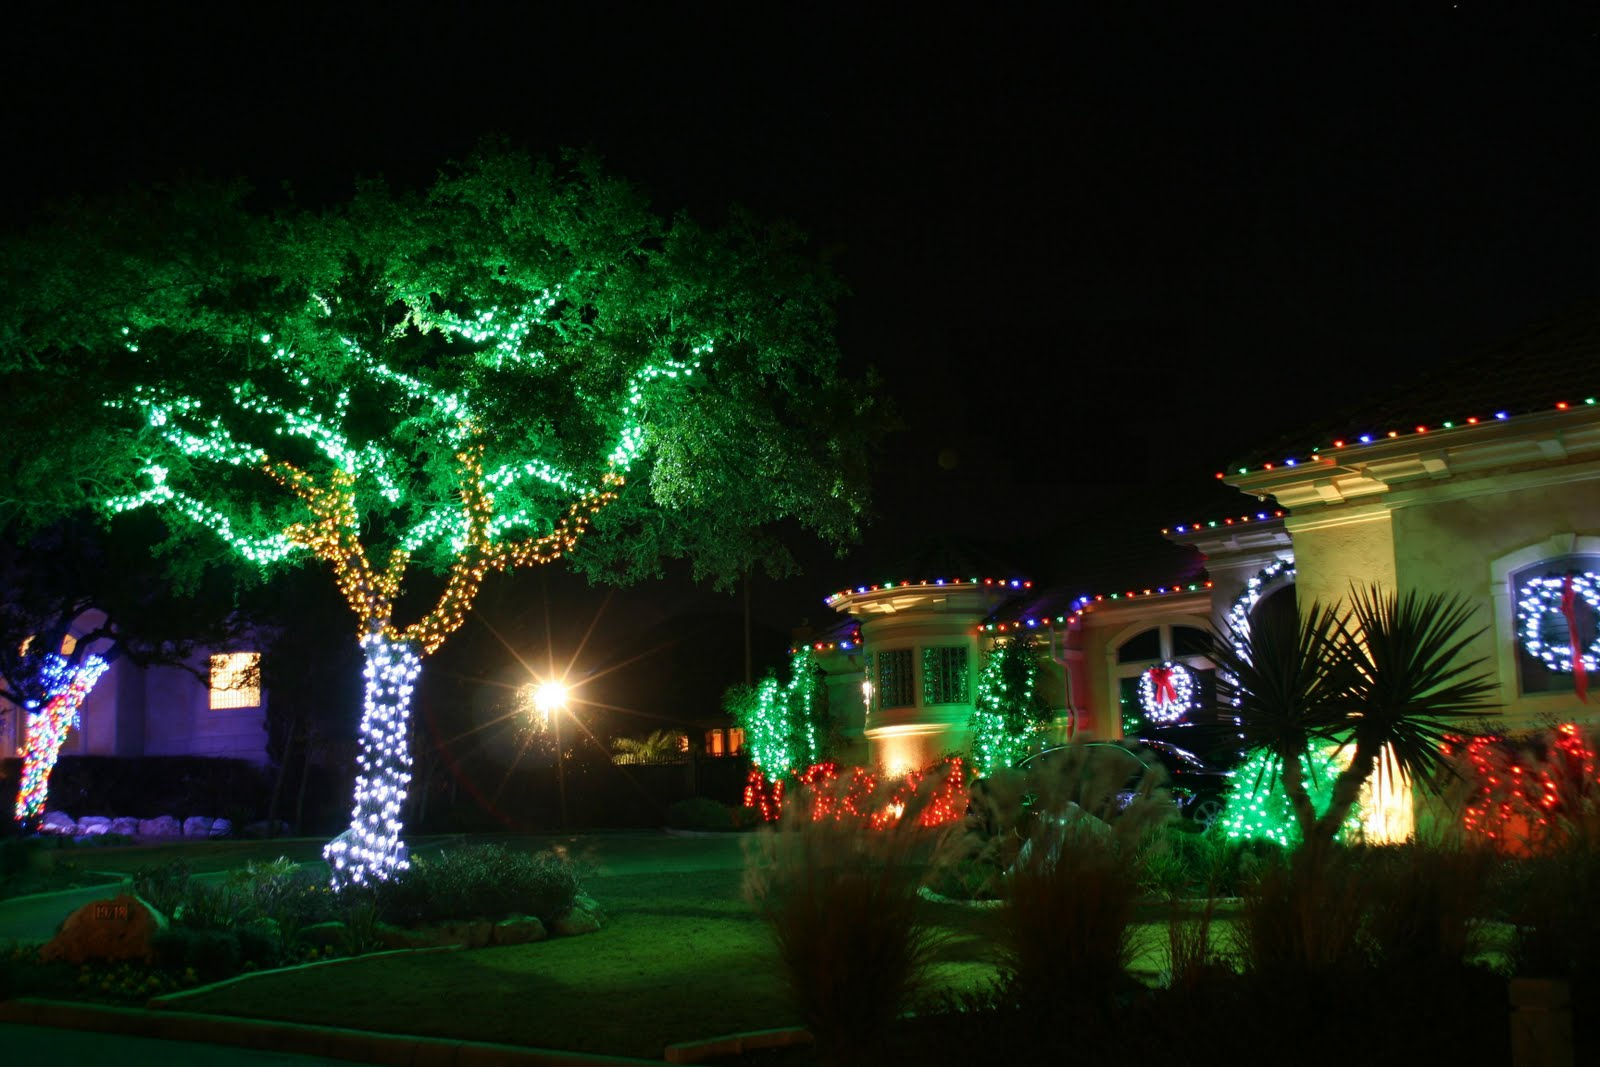 Exterior Xmas Lighting Ideas Of Fascinating Articles And Cool Stuff Christmas Outdoor